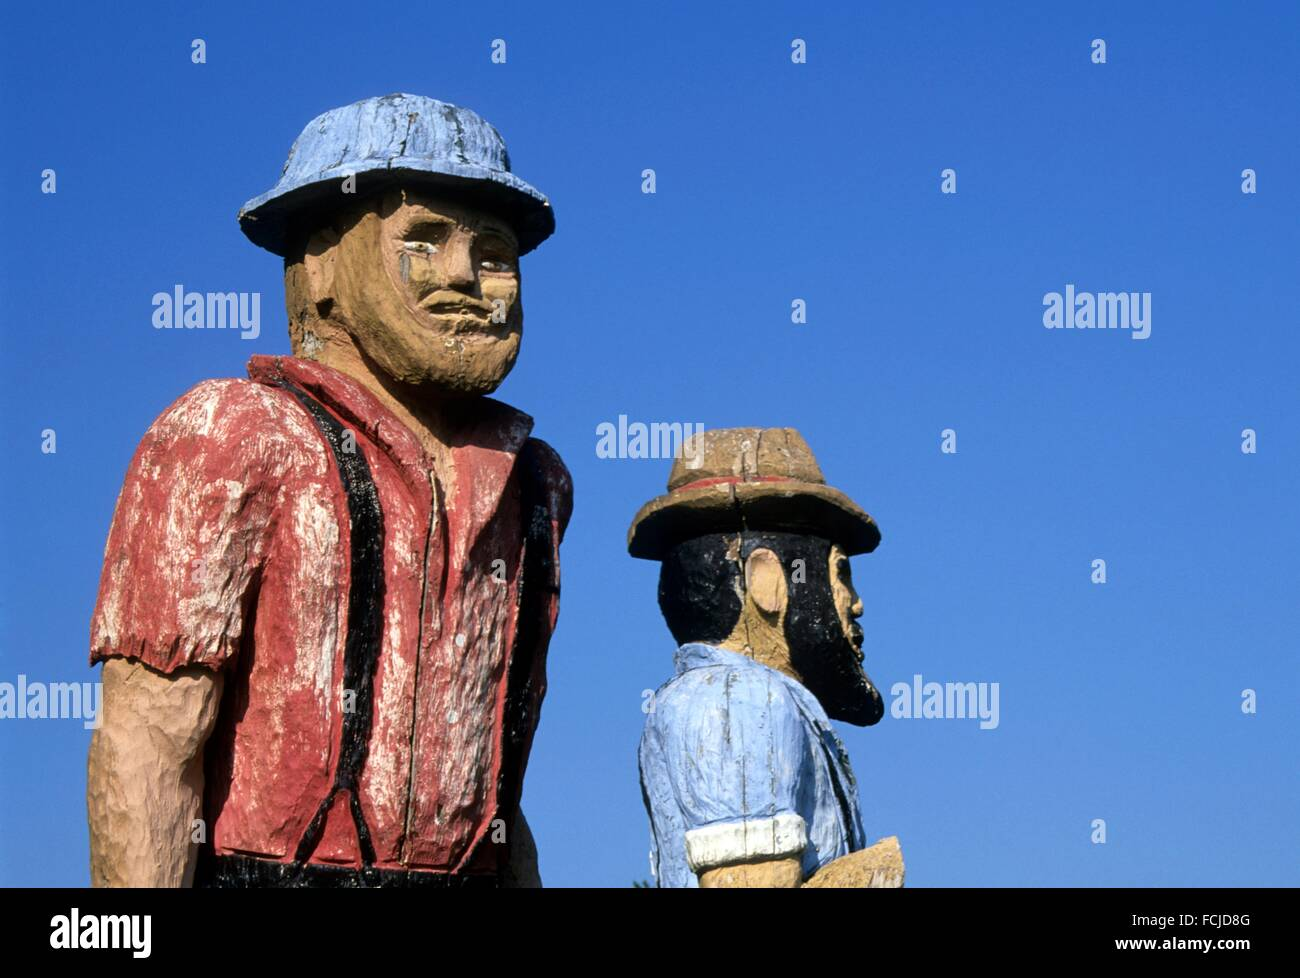 Chainsaw sculptures at Shea Point, Foster Lake, Linn County, Oregon. Stock Photo